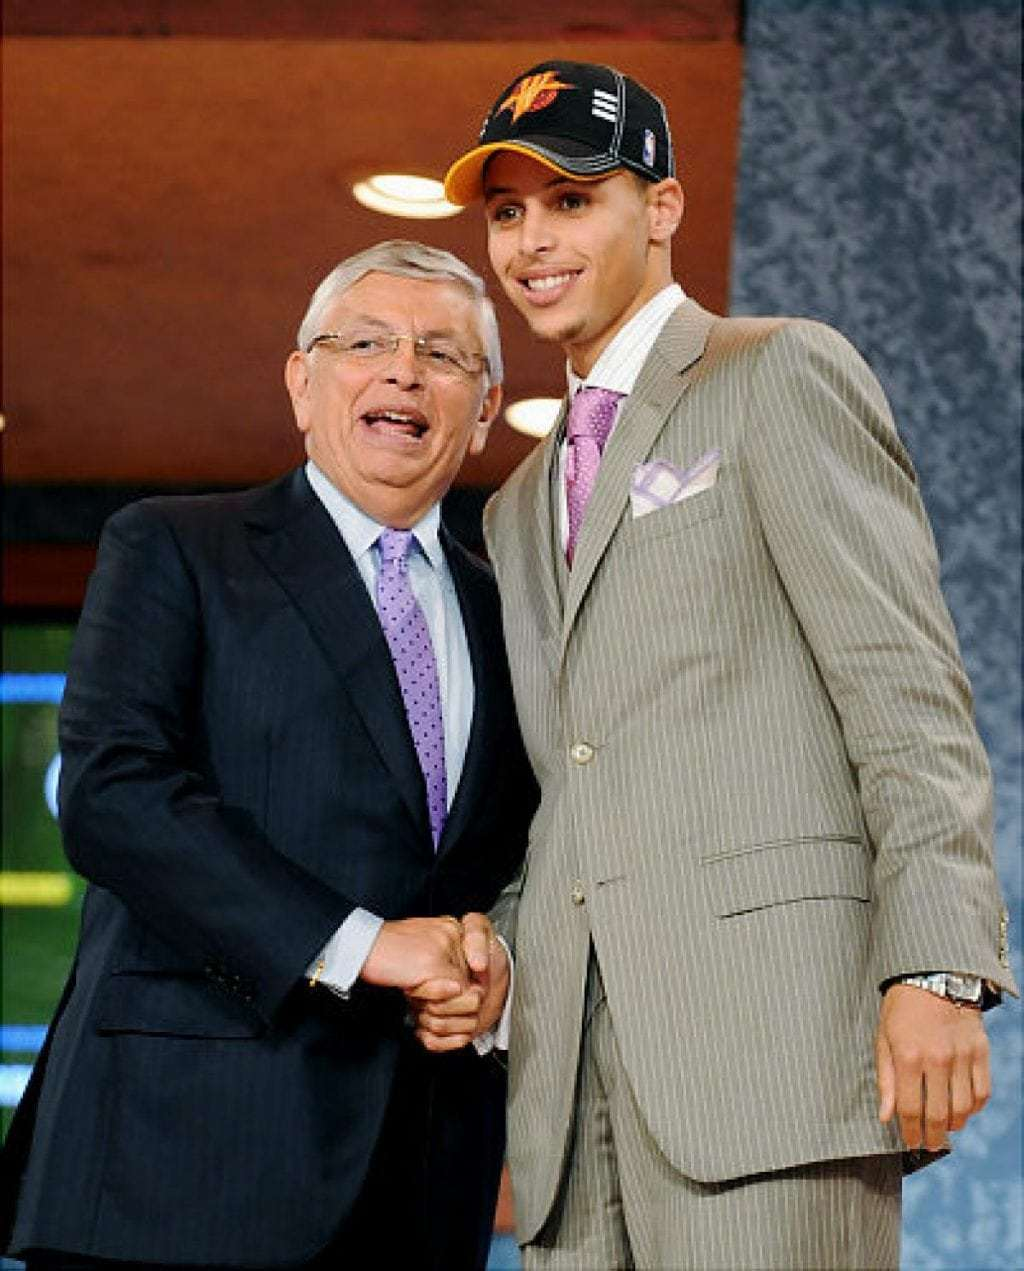 Stephen Curry being drafted